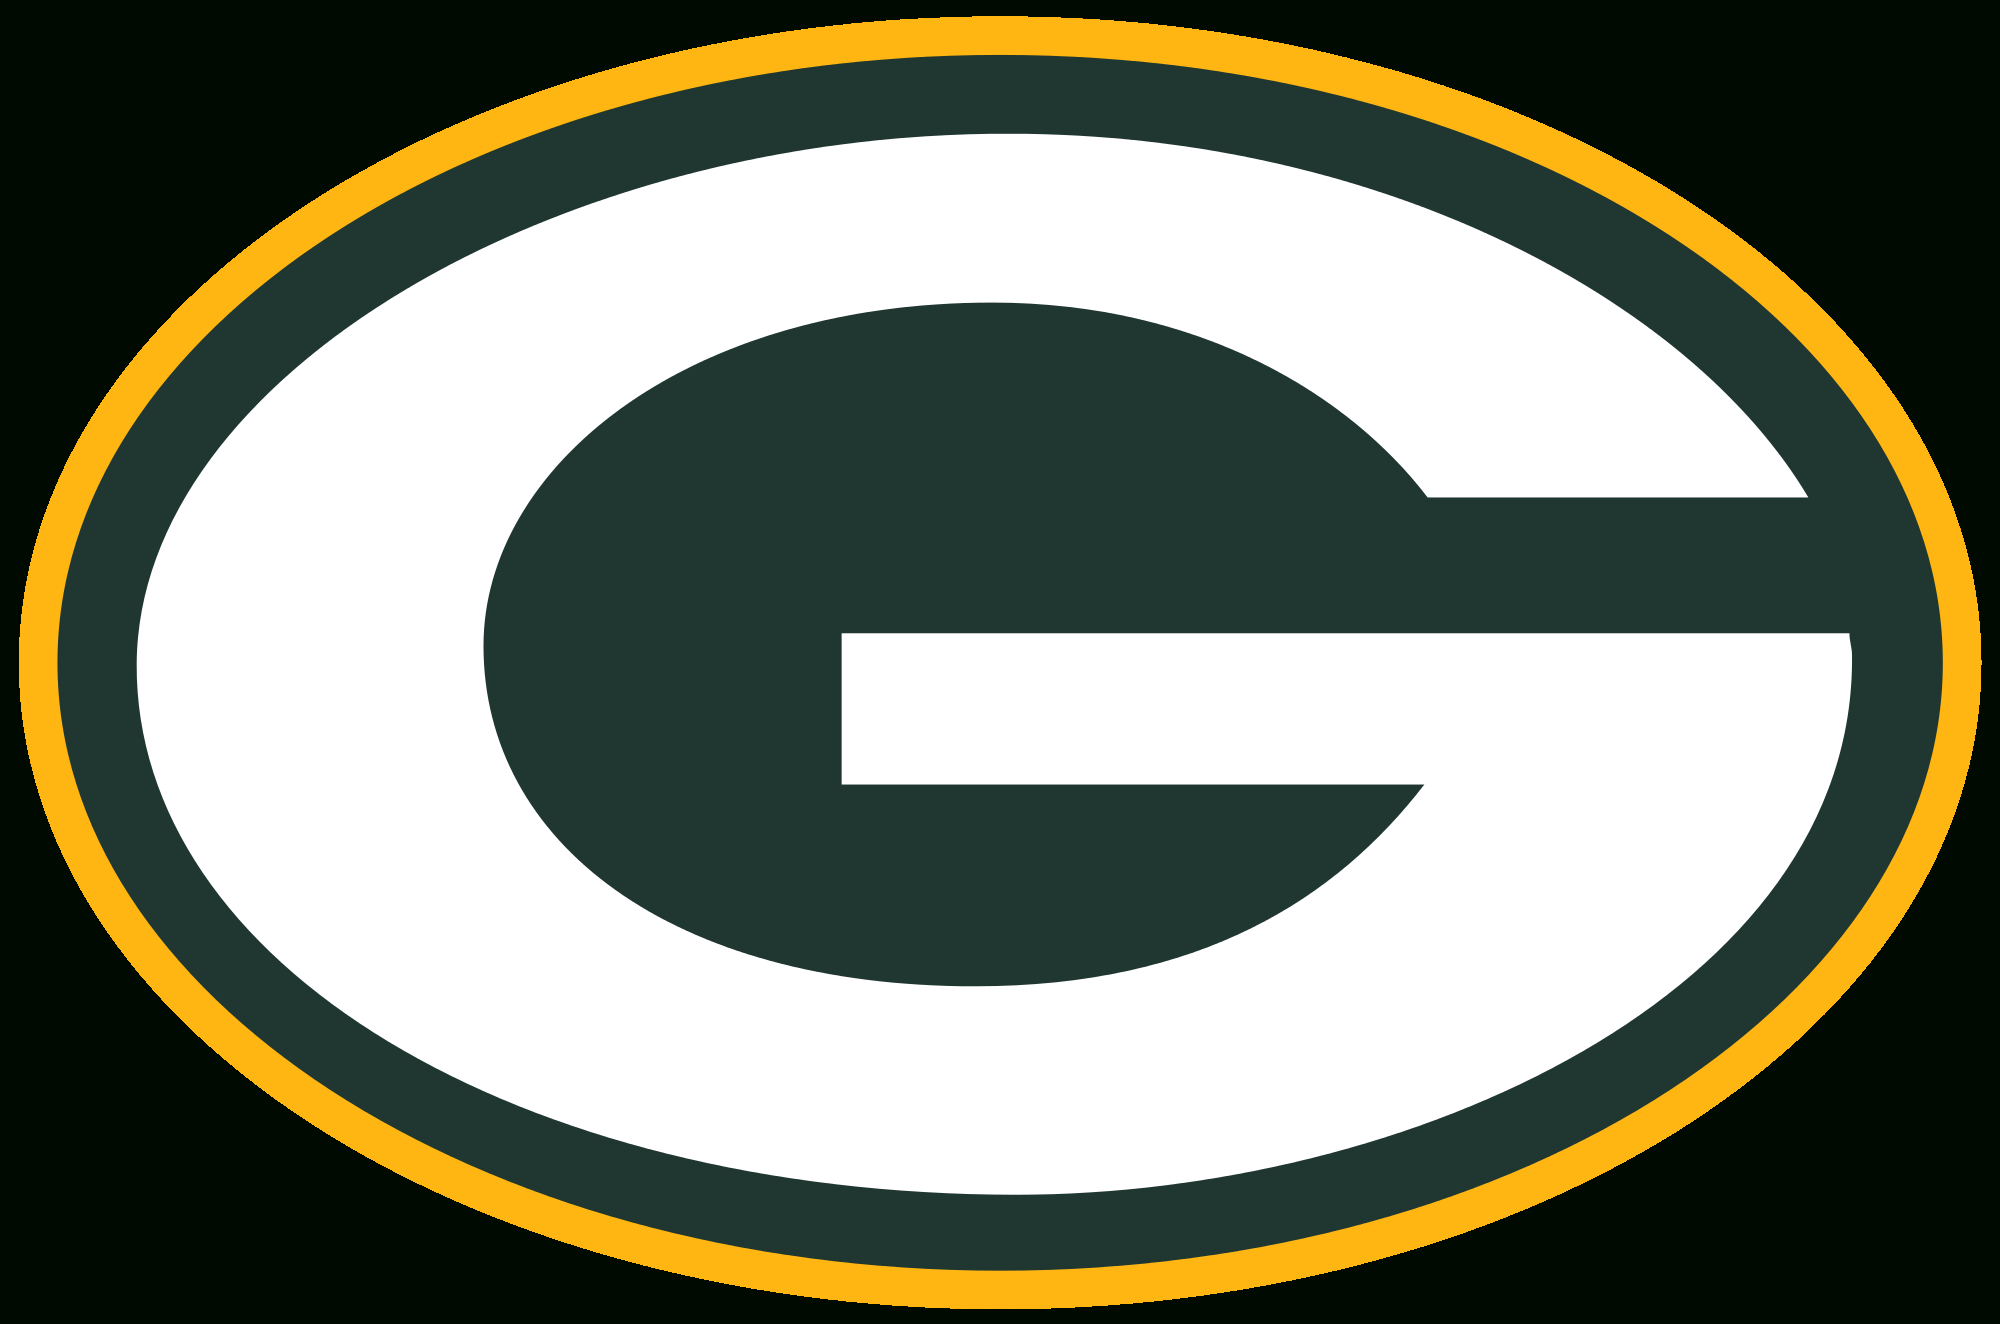 This is a photo of Gorgeous Green Bay Packers Drawing